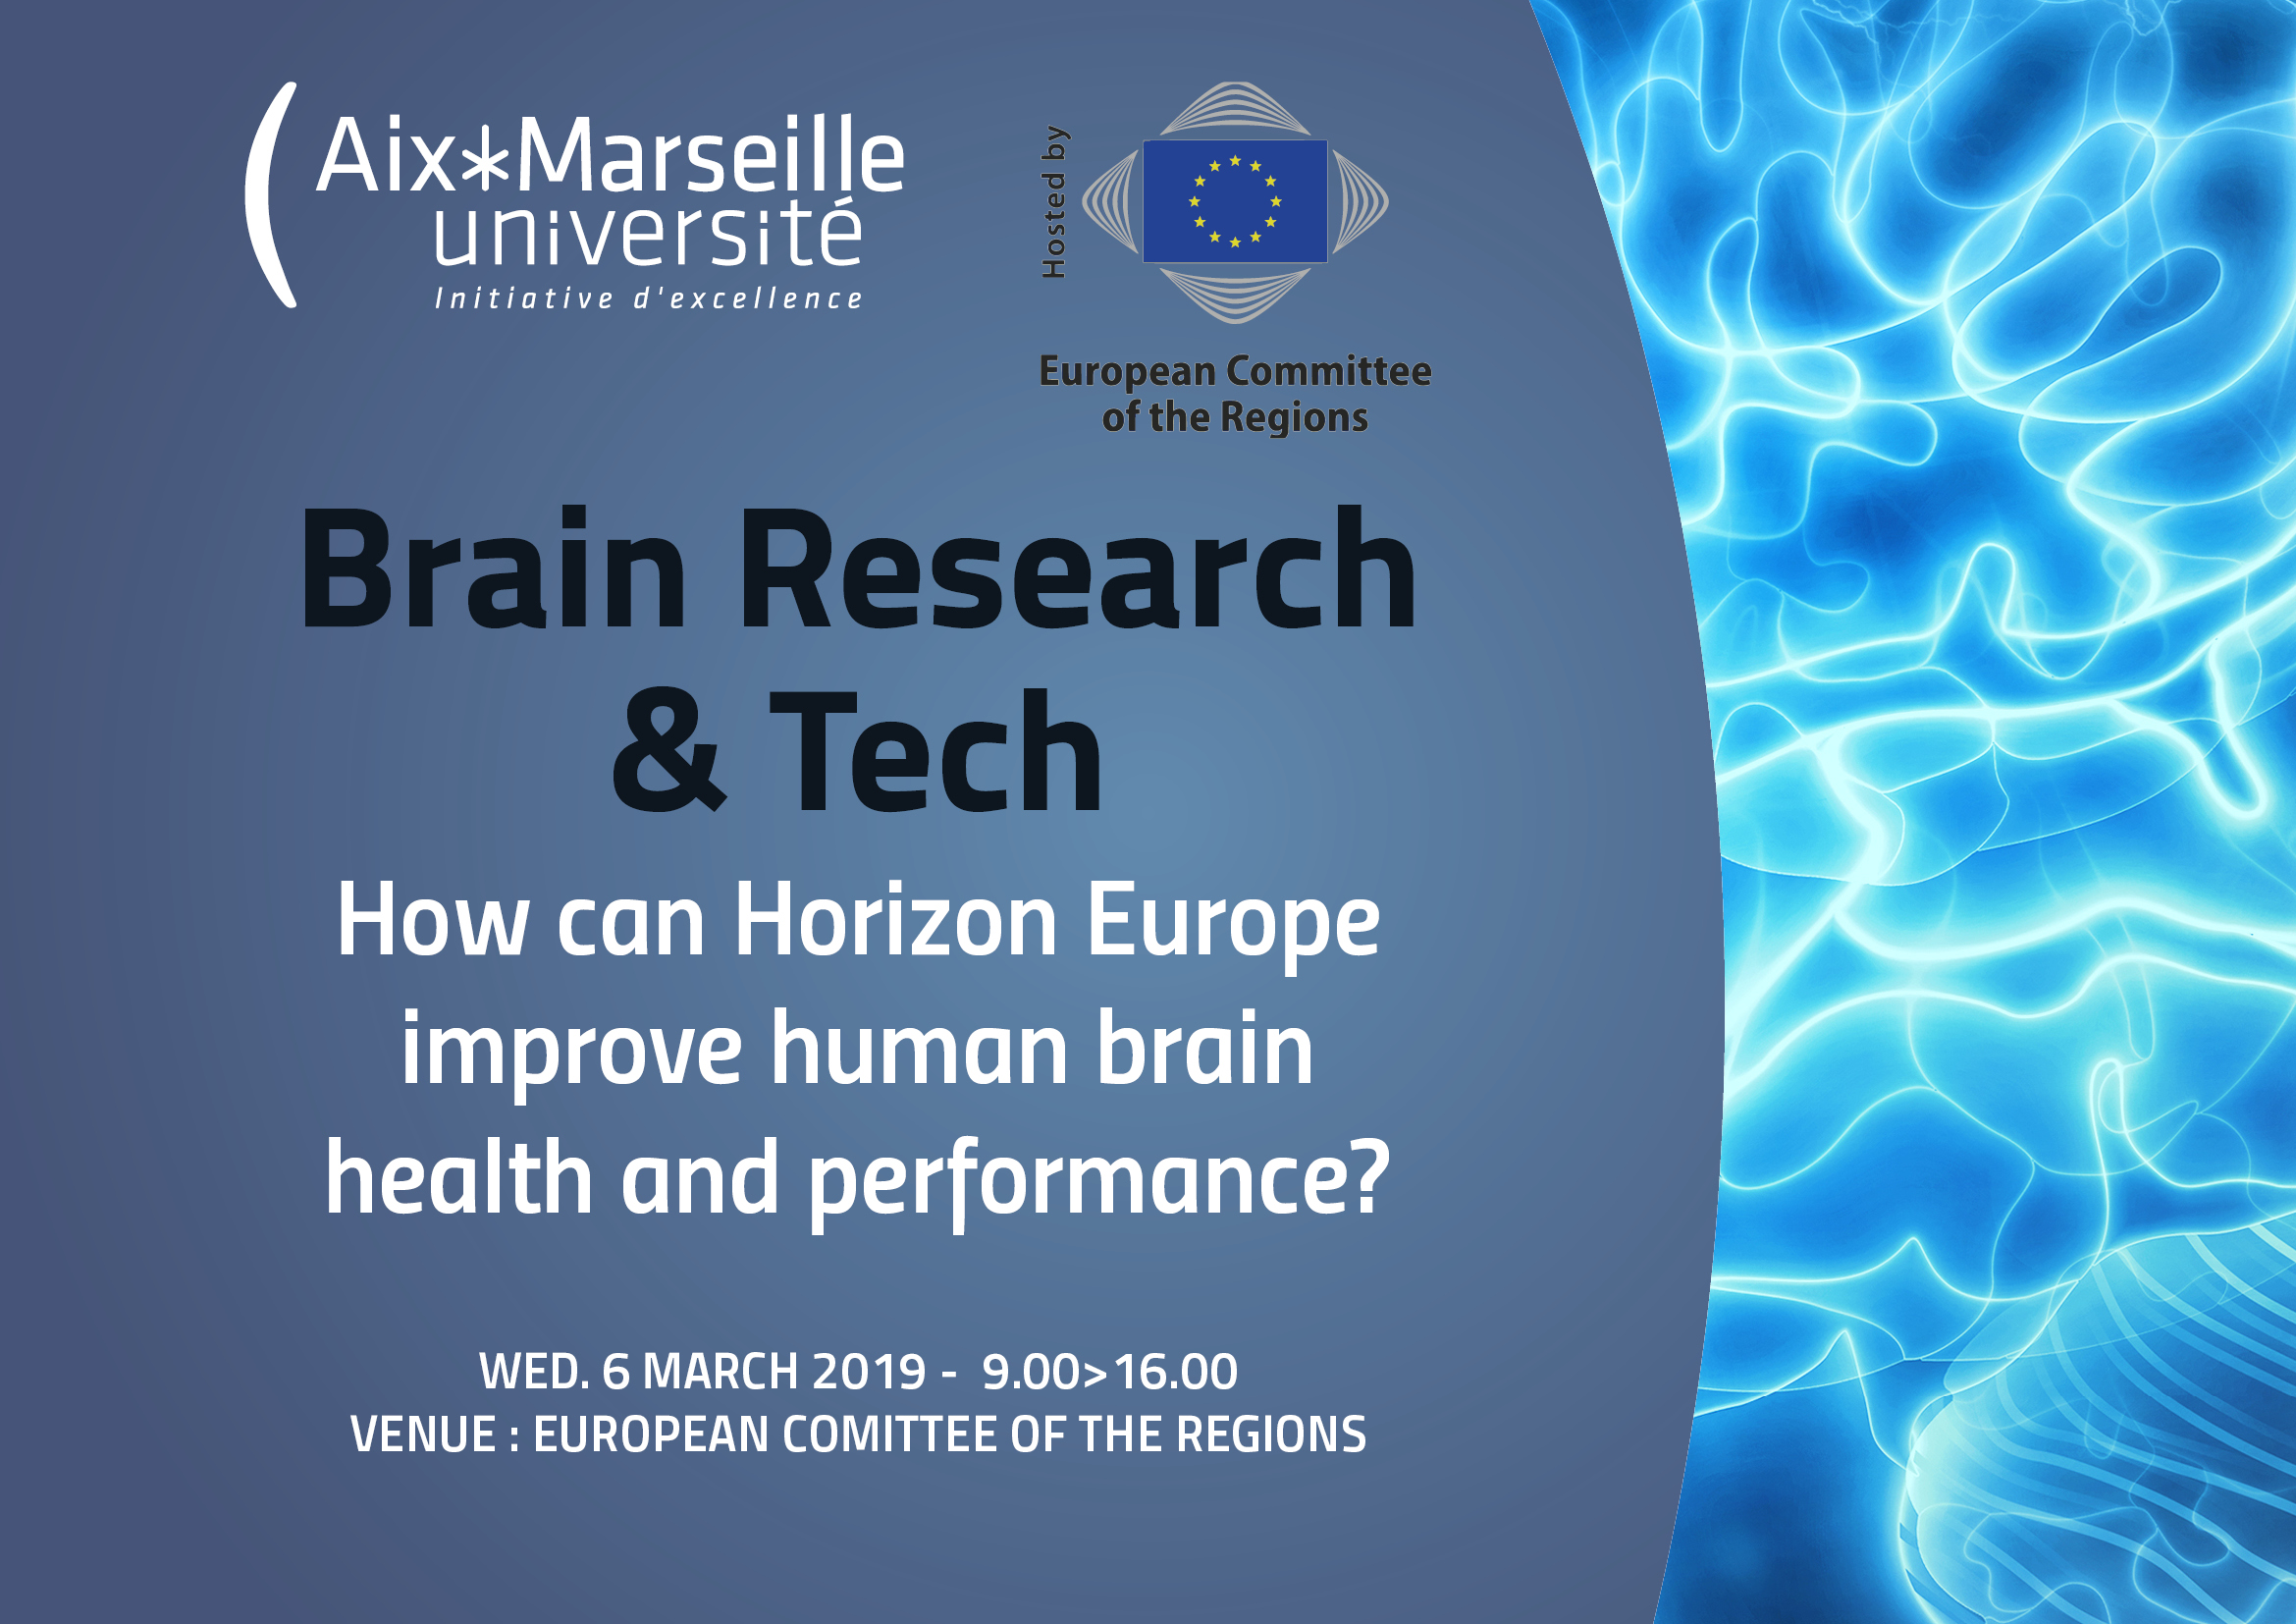 How can Horizon Europe improve human brain health and performance? A contribution to a major European challenge